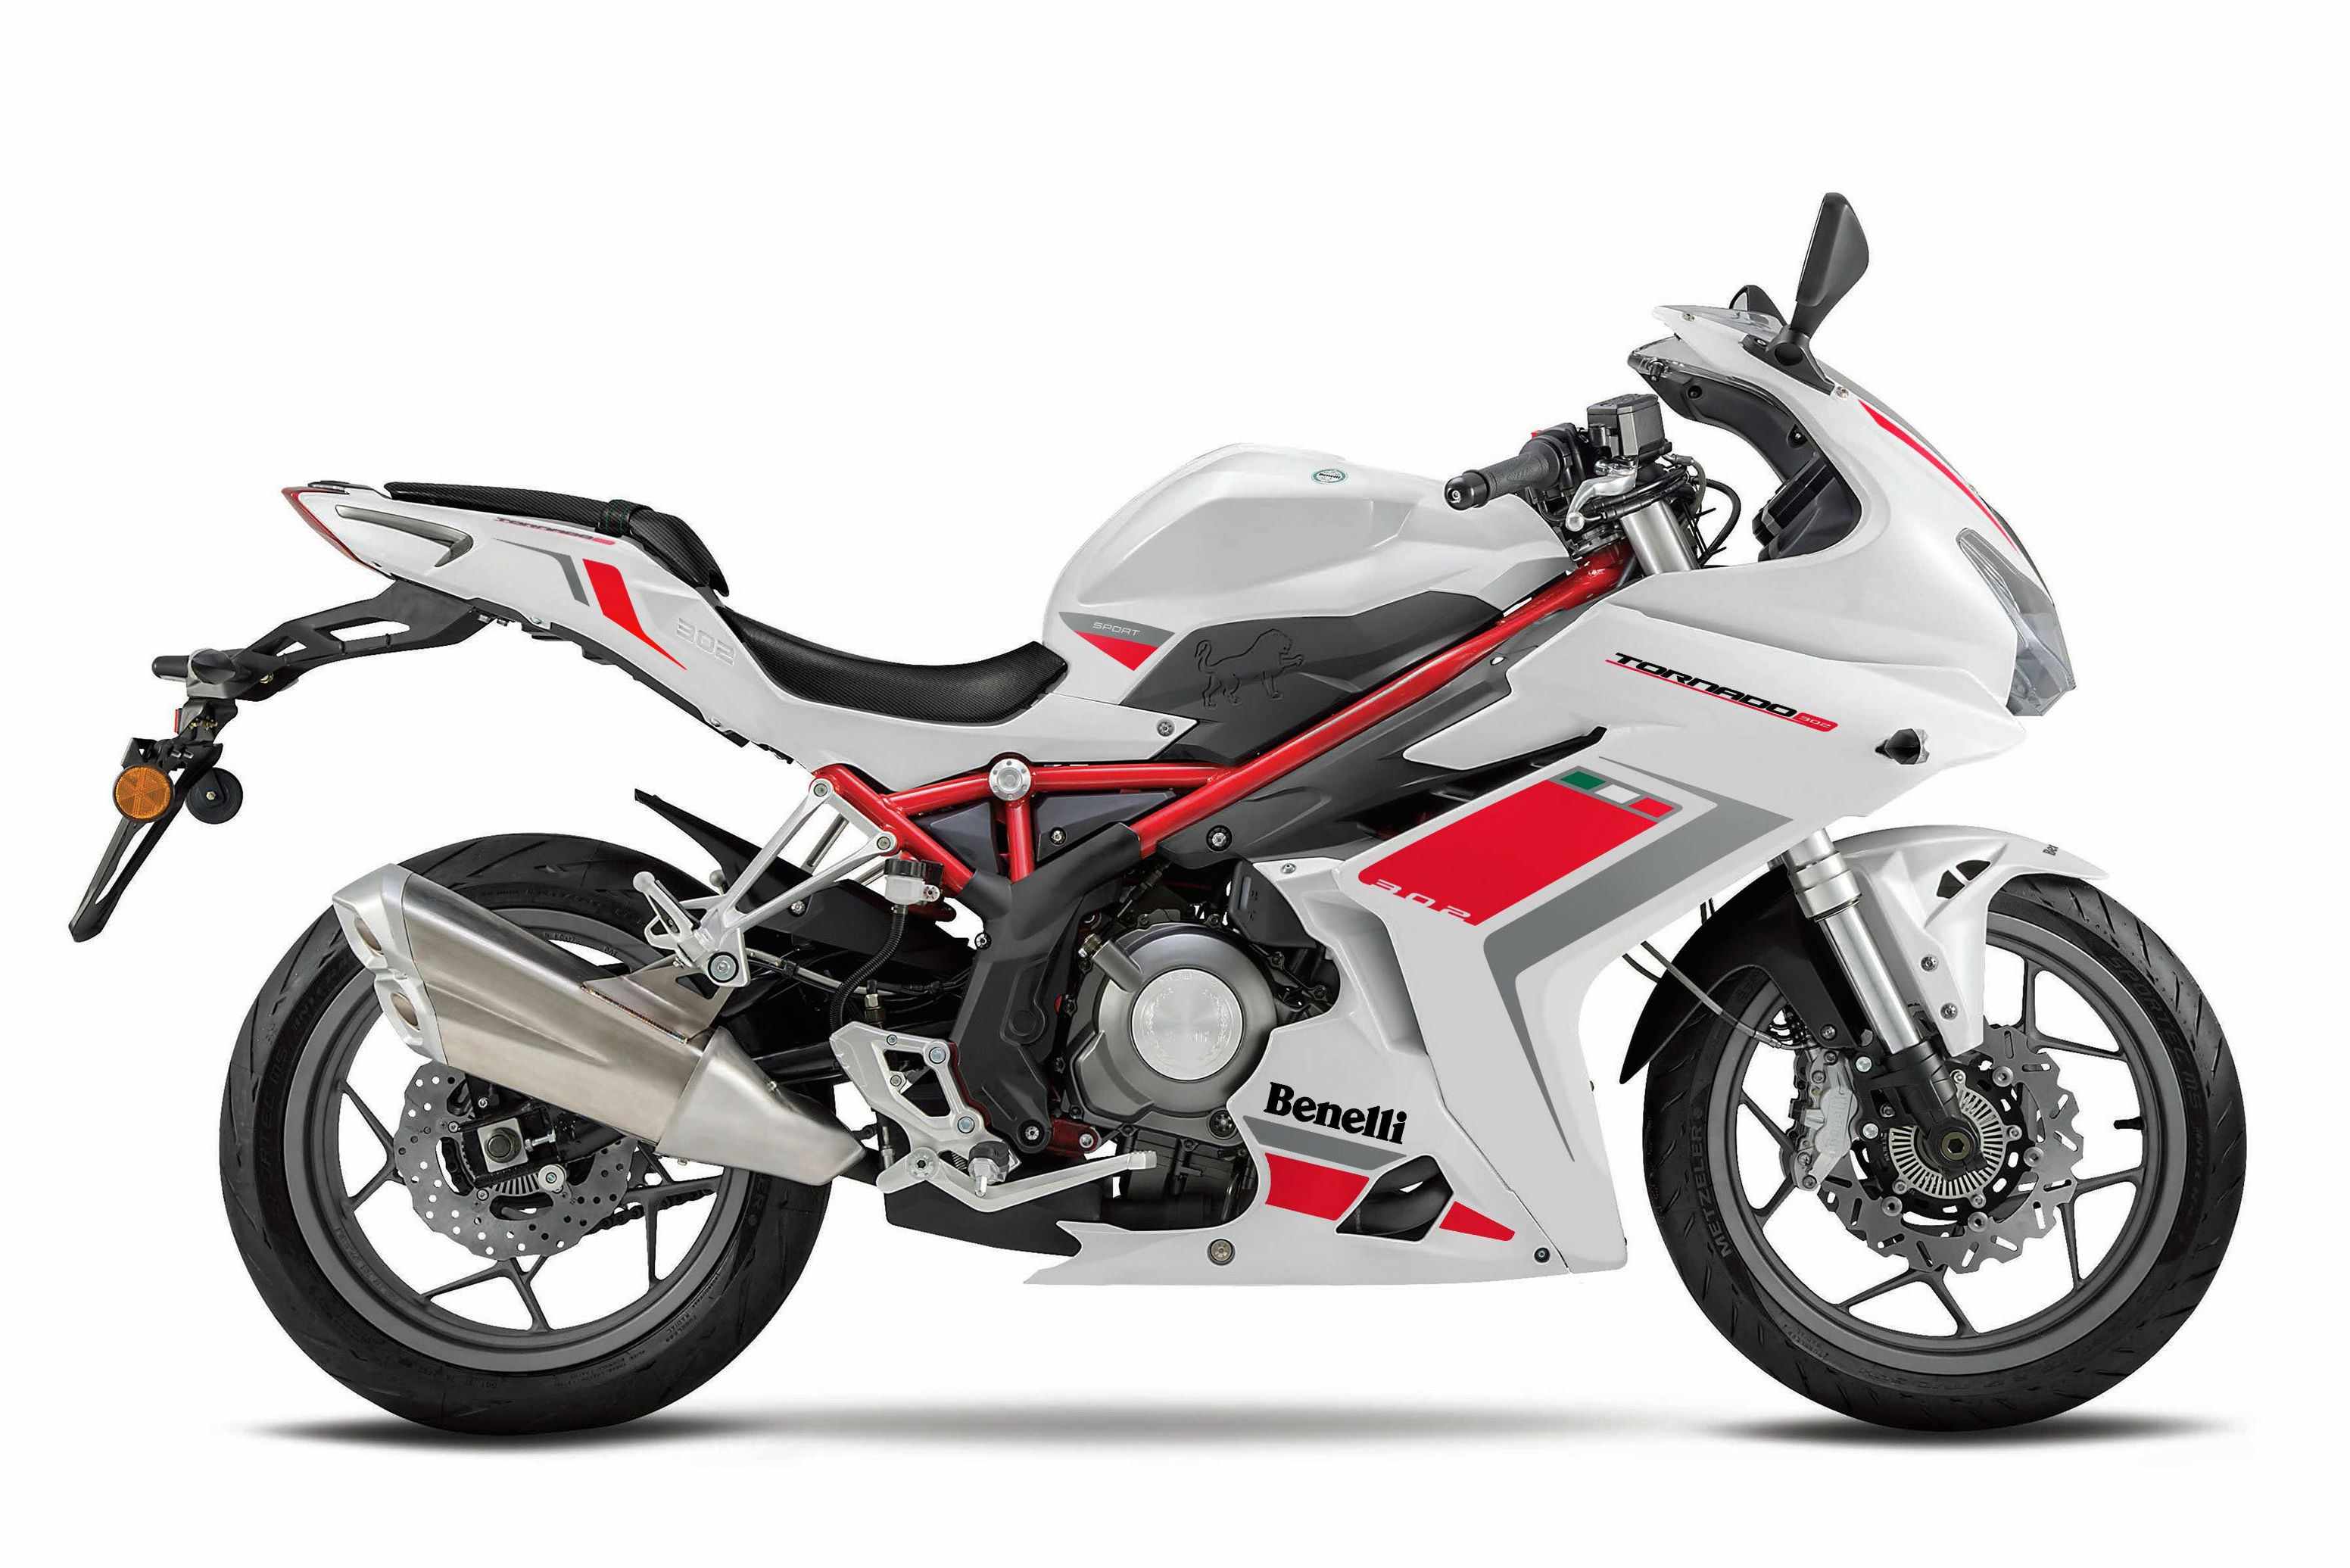 New Benelli range launched